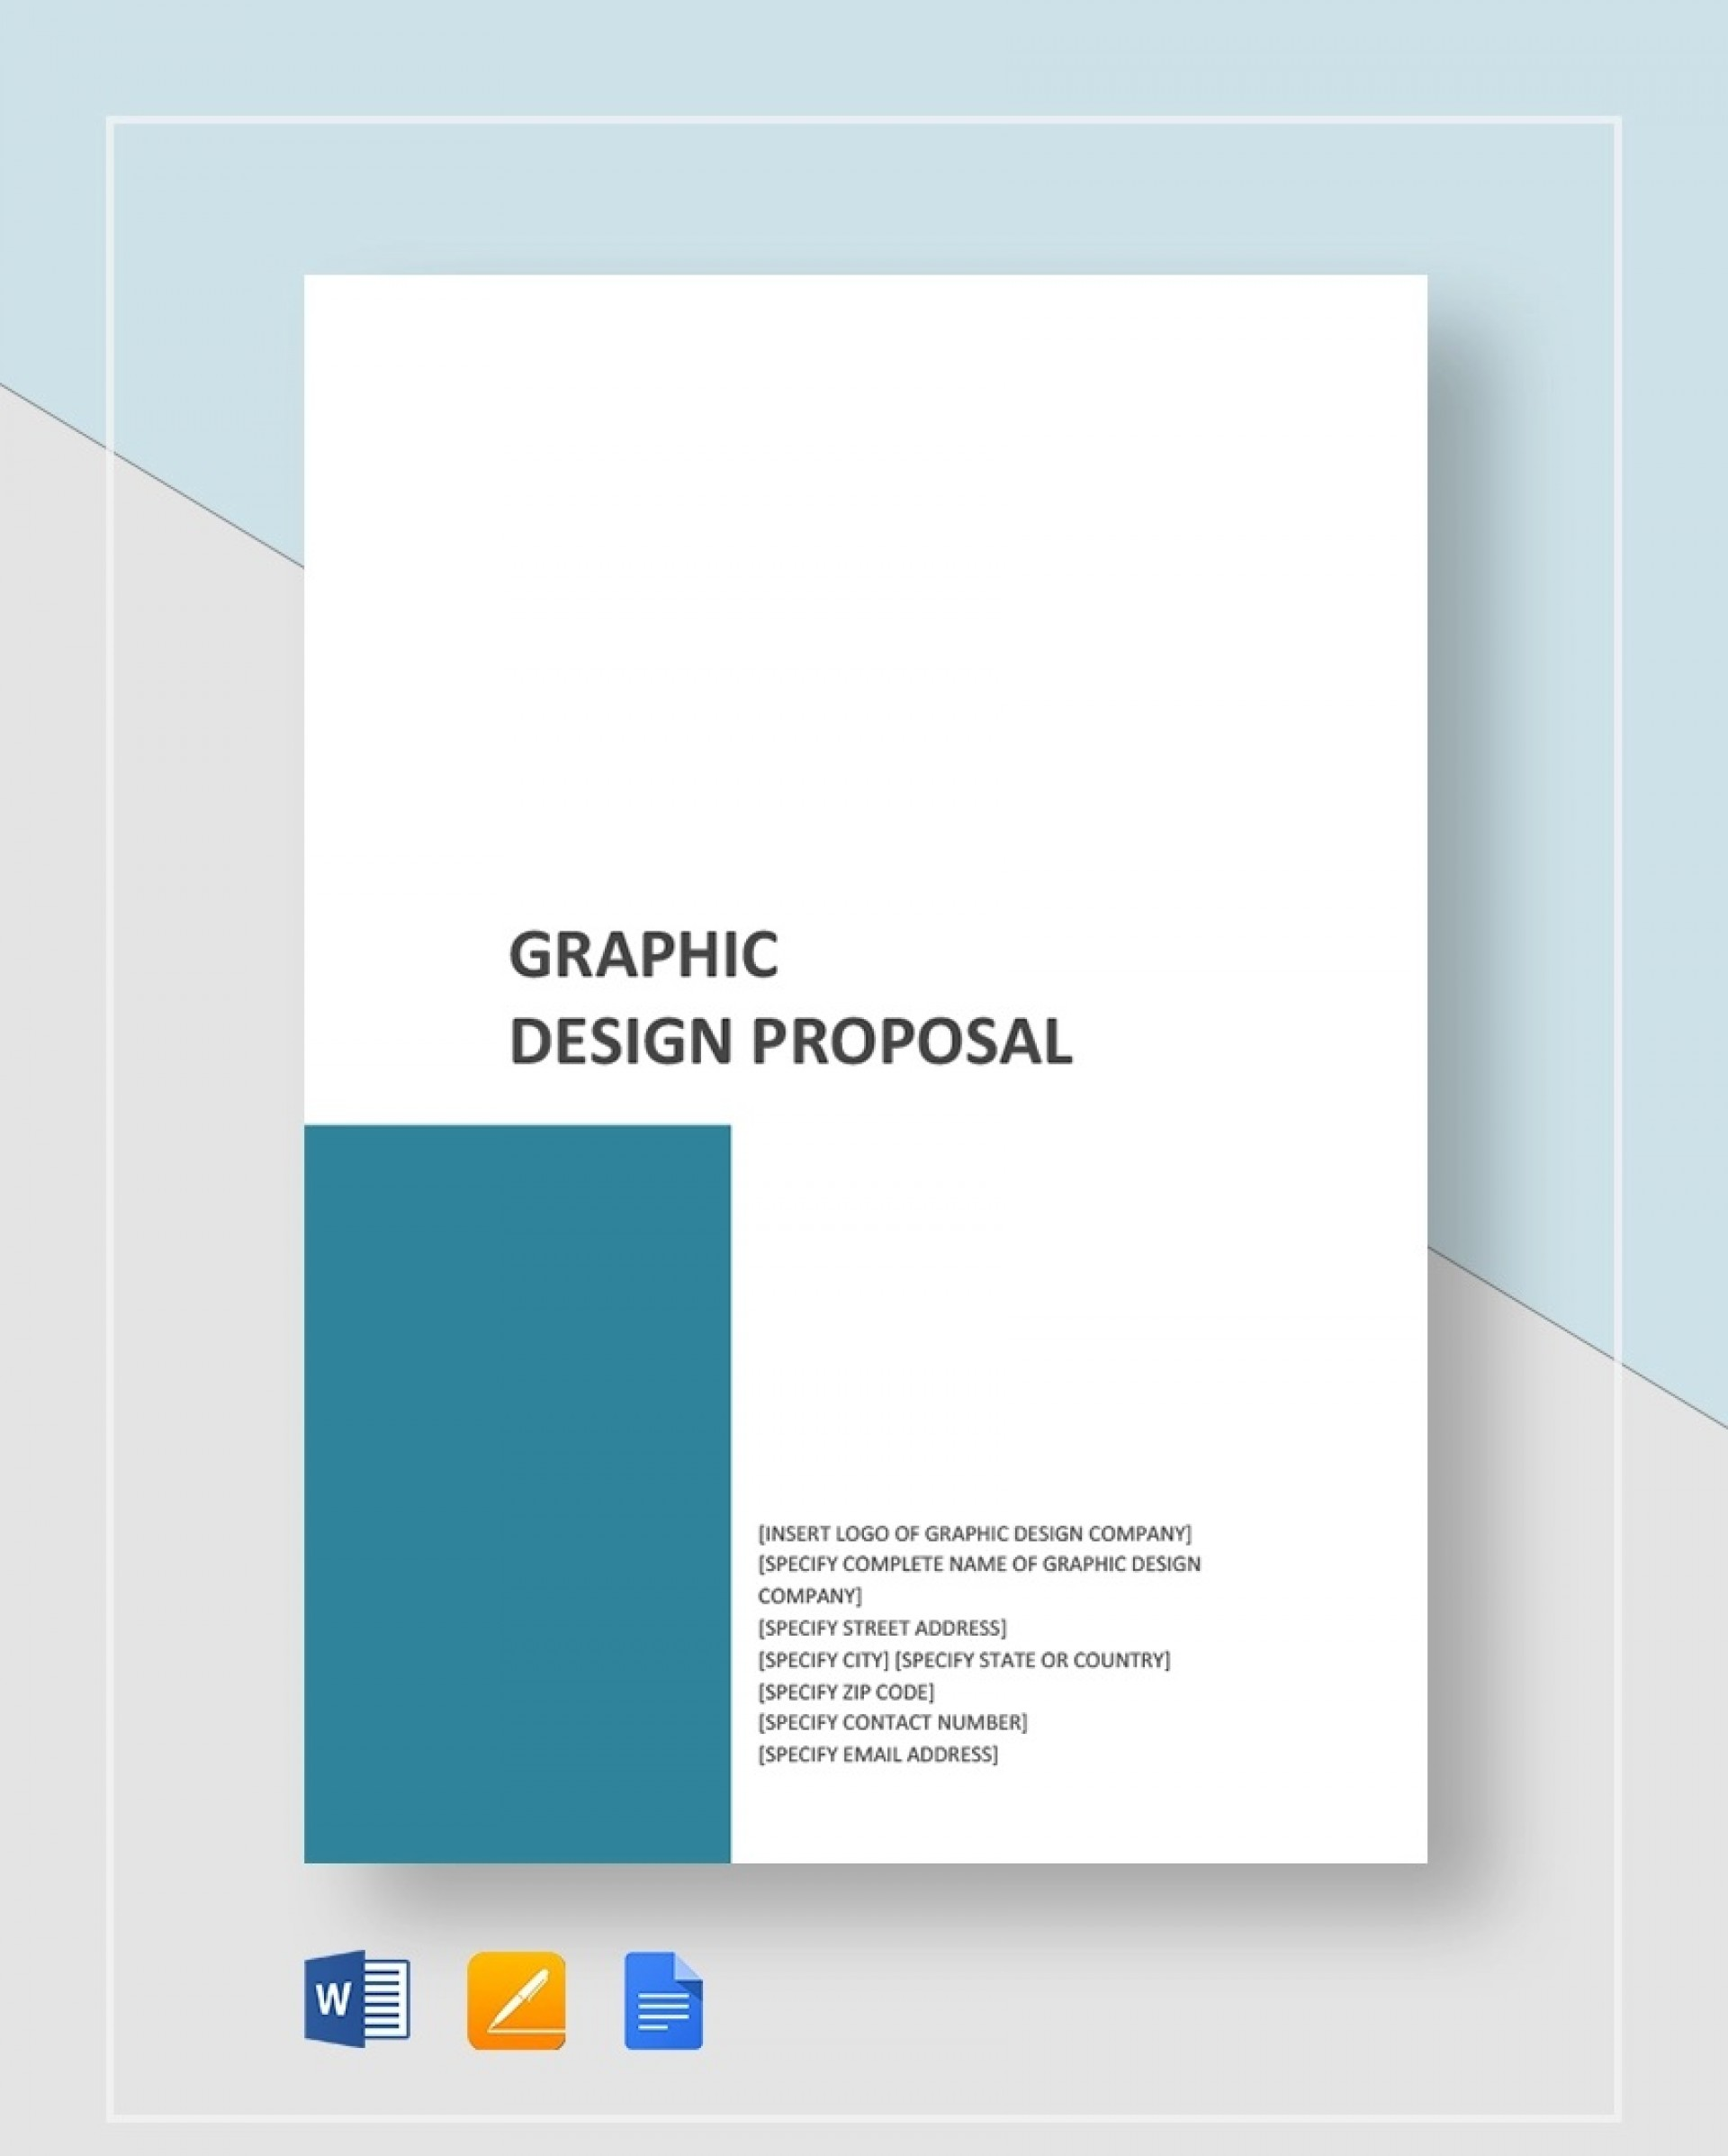 Template Graphic Design Proposal Idea  Free Download Indesign1920